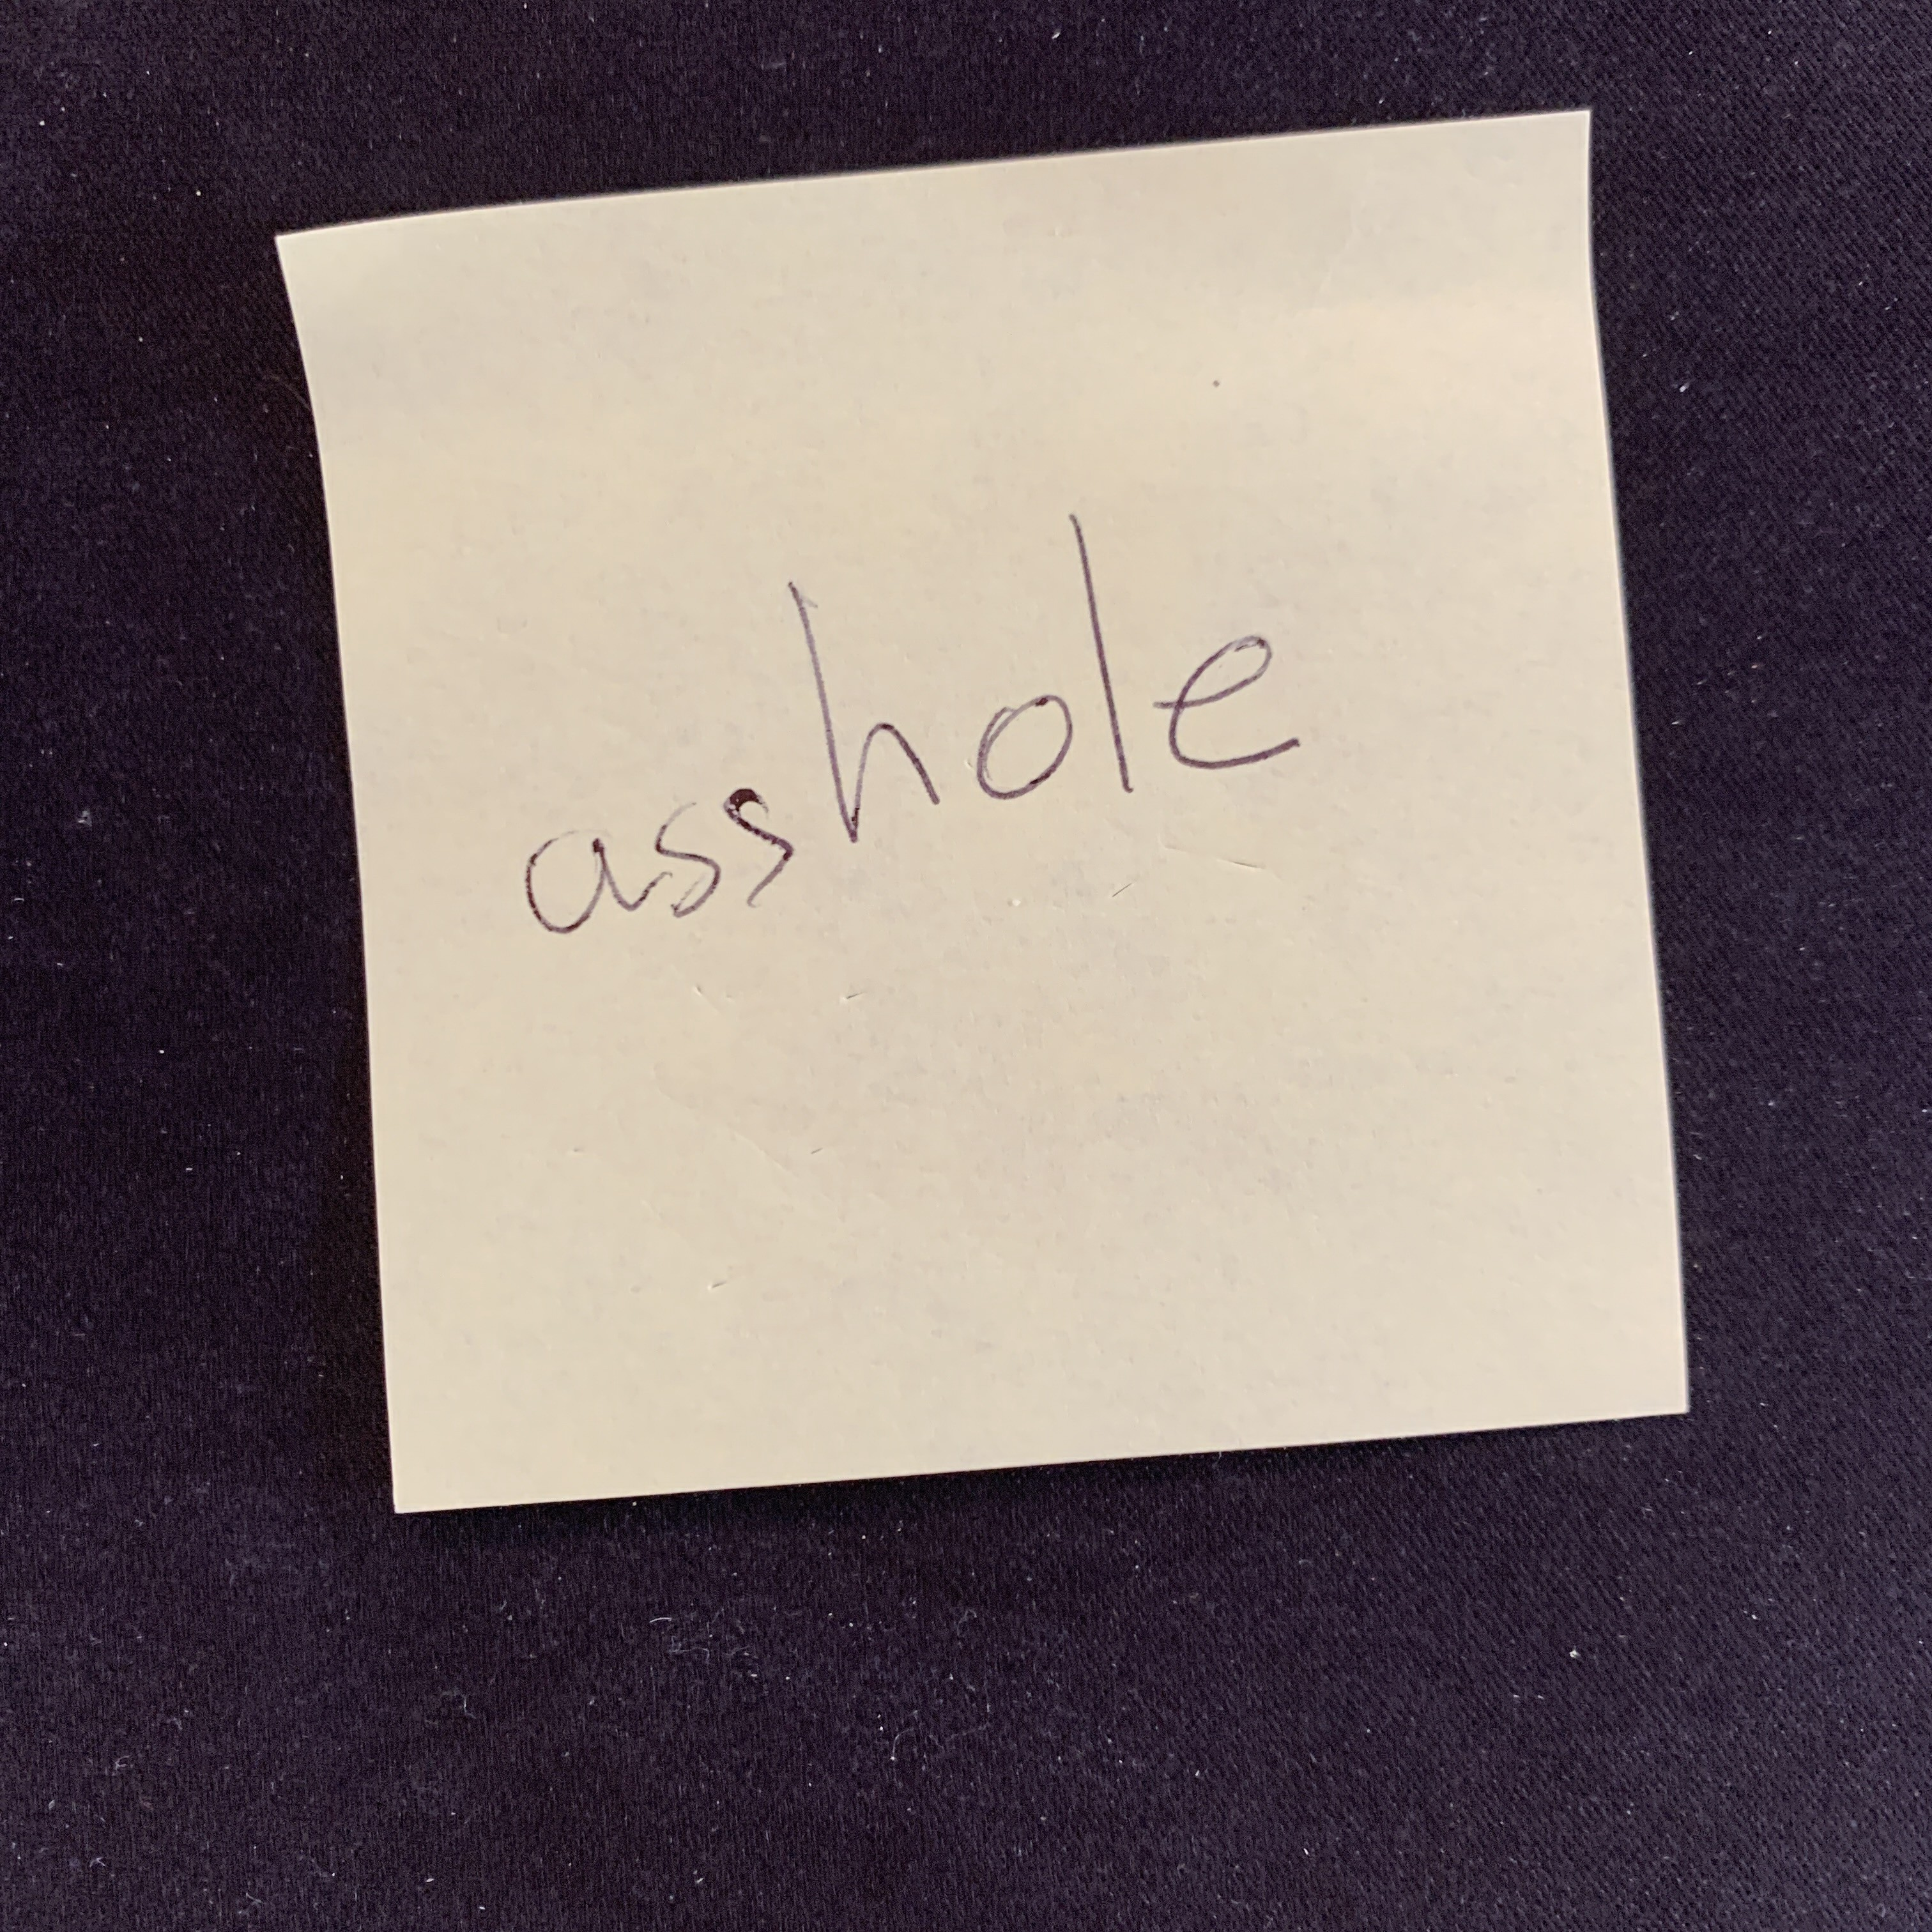 """Post-it note with word """"asshole"""" written on it"""